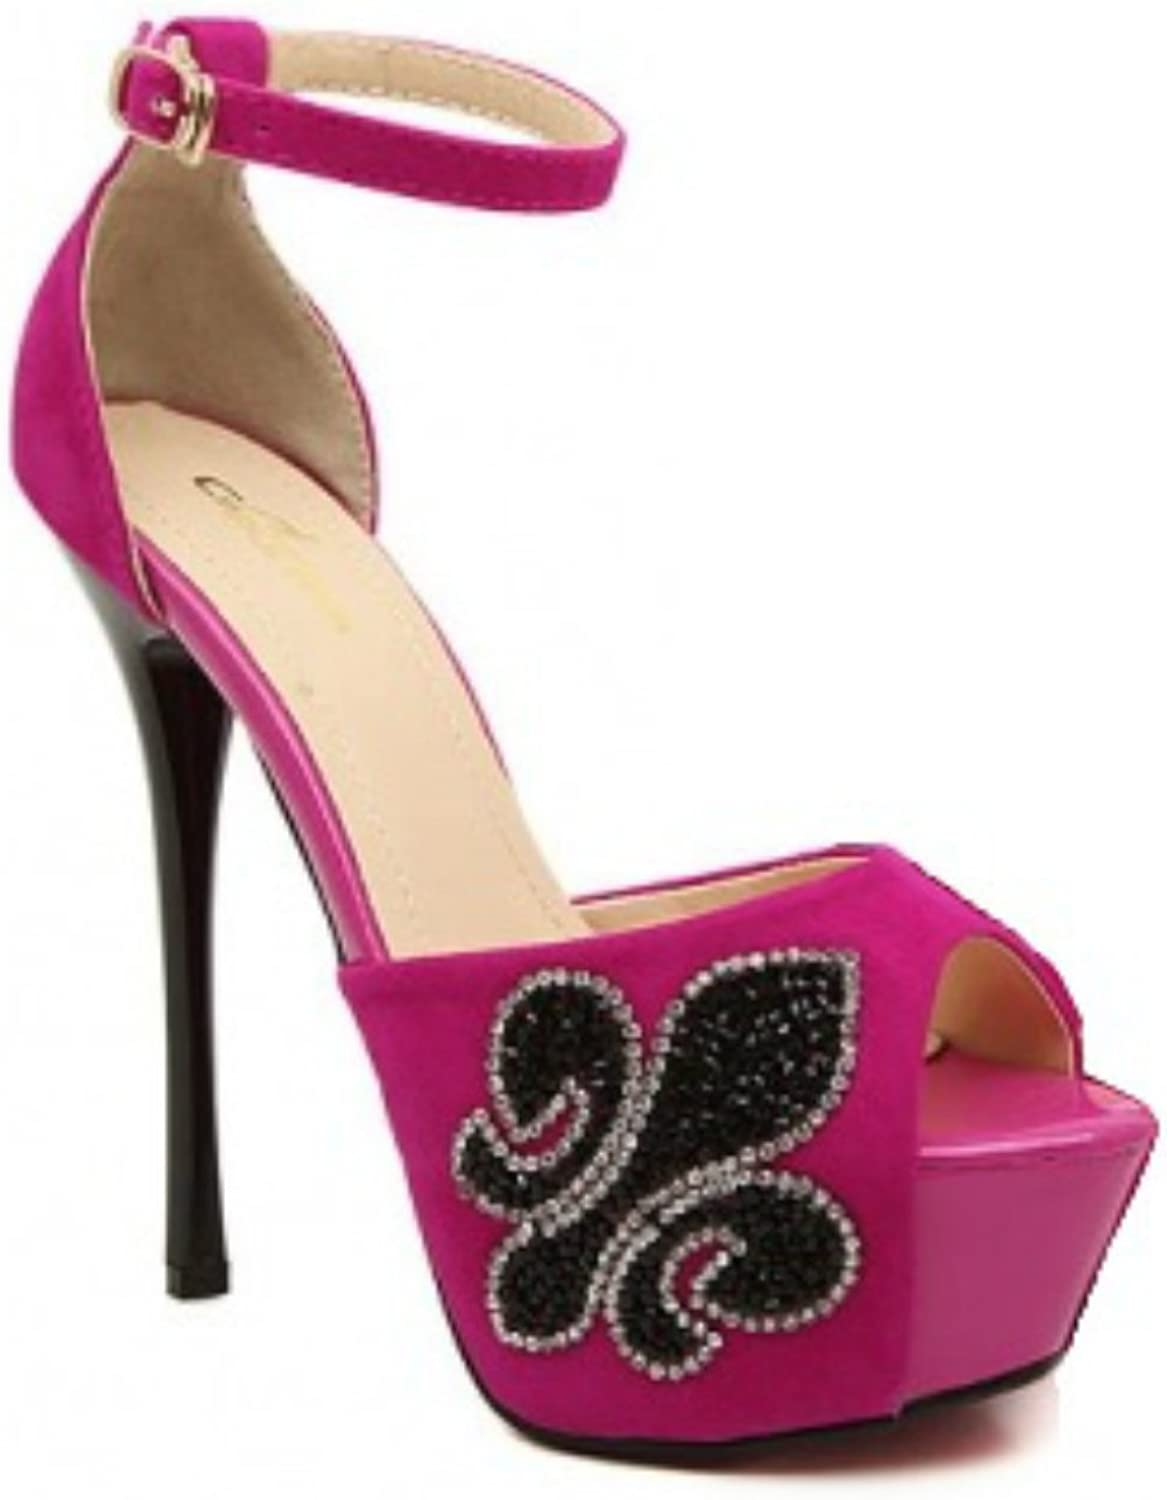 Hot Pink Suede Peep Toe Pump Jeweled Stiletto Heel shoes